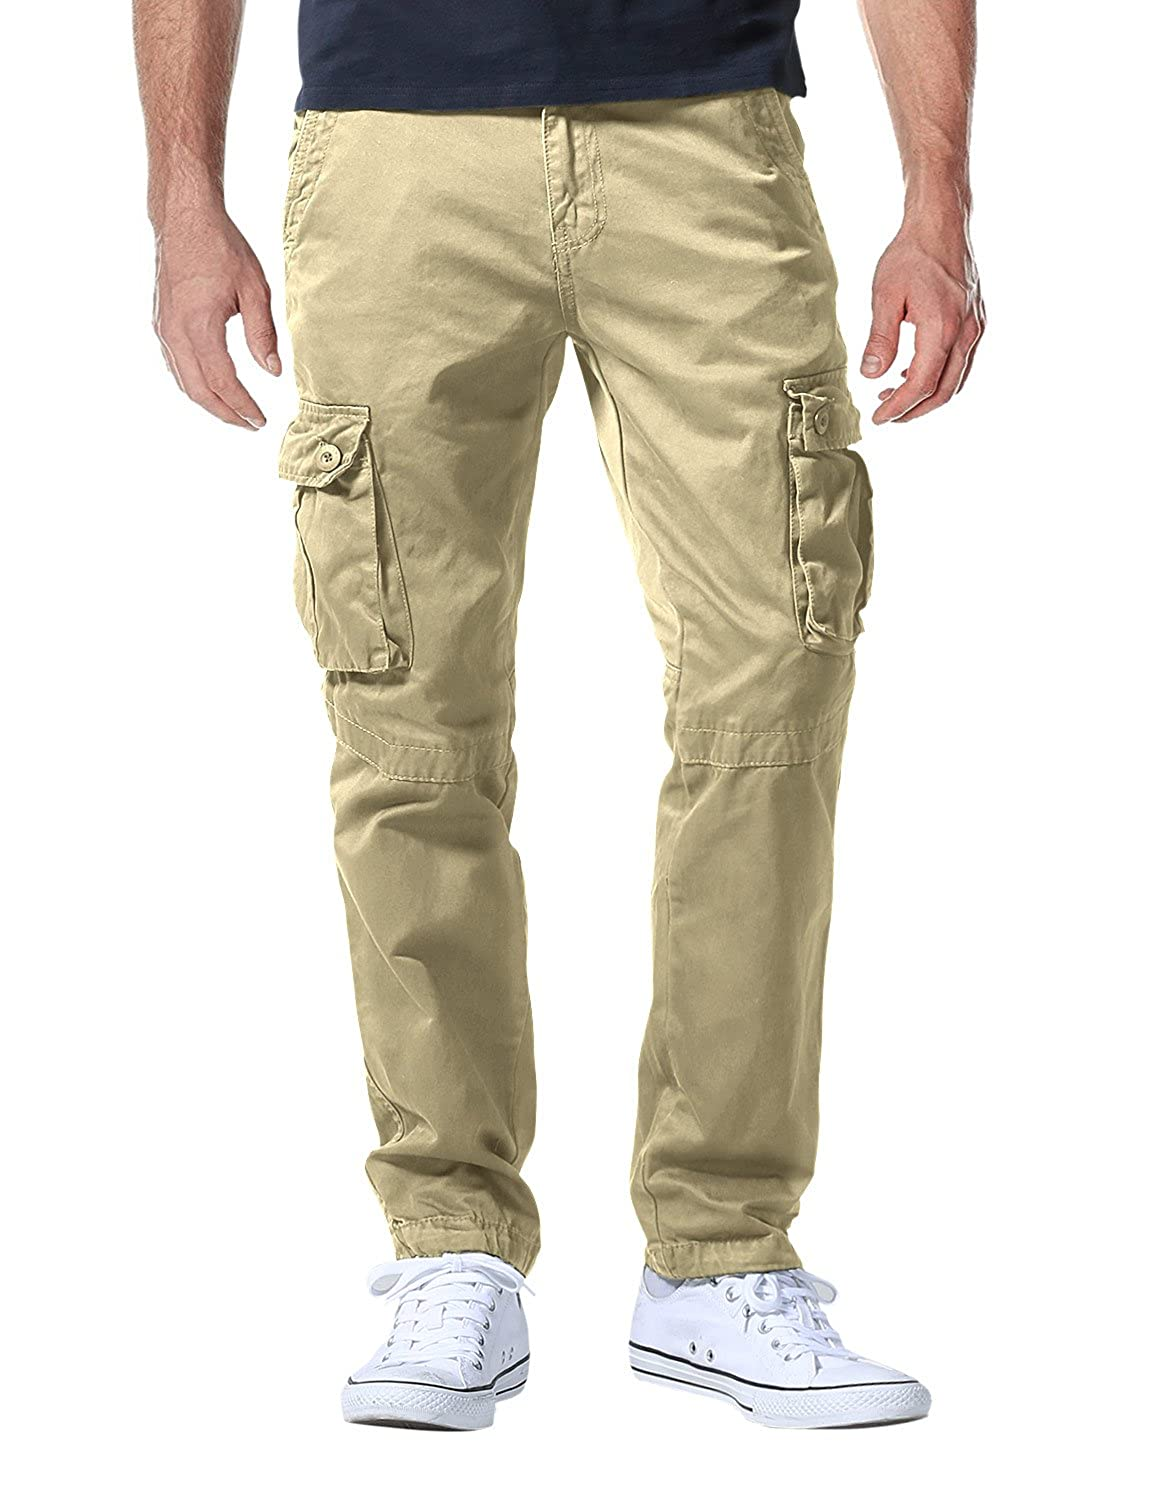 9368fb398e Classic style, hardwearing cargo pants with multiple pockets (refer to  pictures for pocket styles) Sits at the waist, regular fit, straight leg